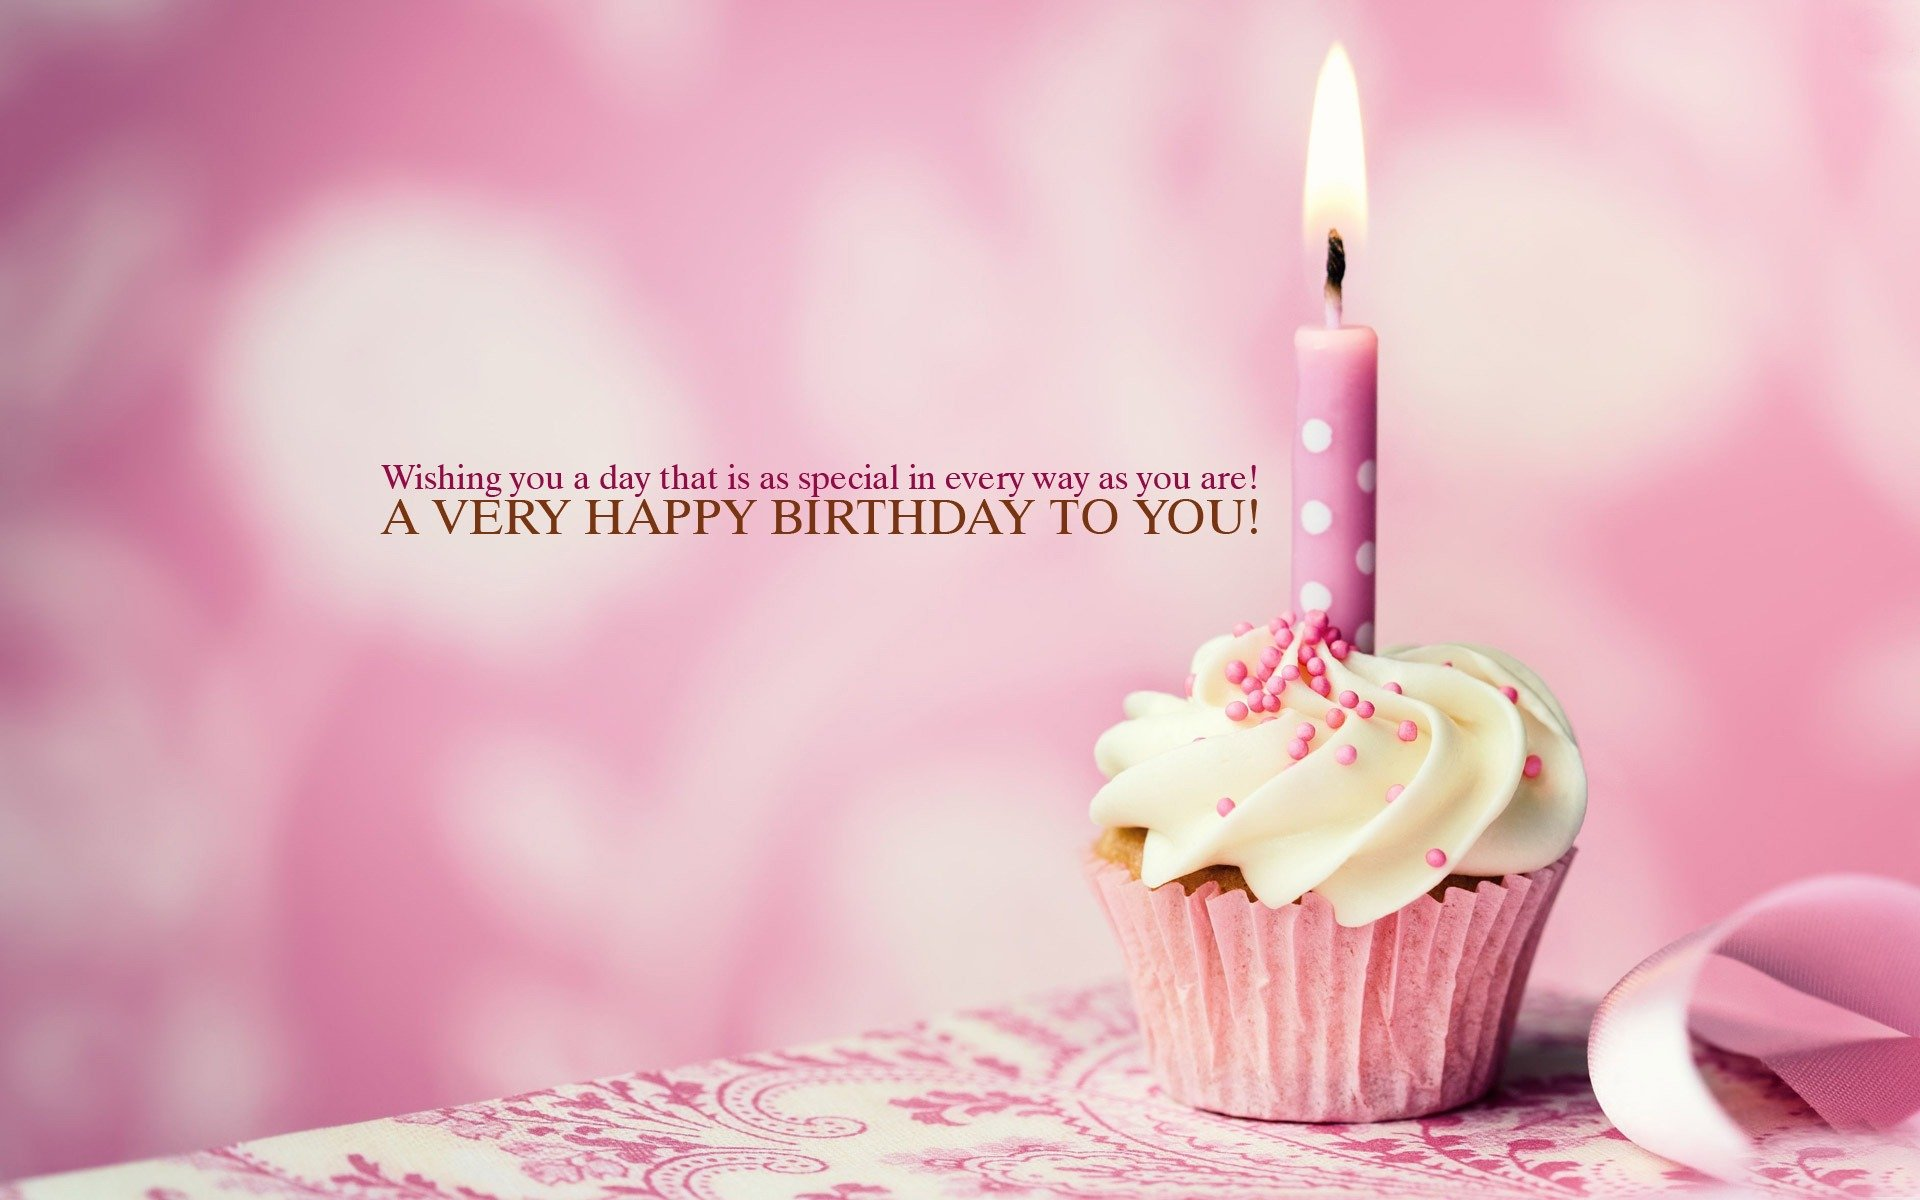 Happy Birthday Cup Cake Candle Wallpaper _1920x1200